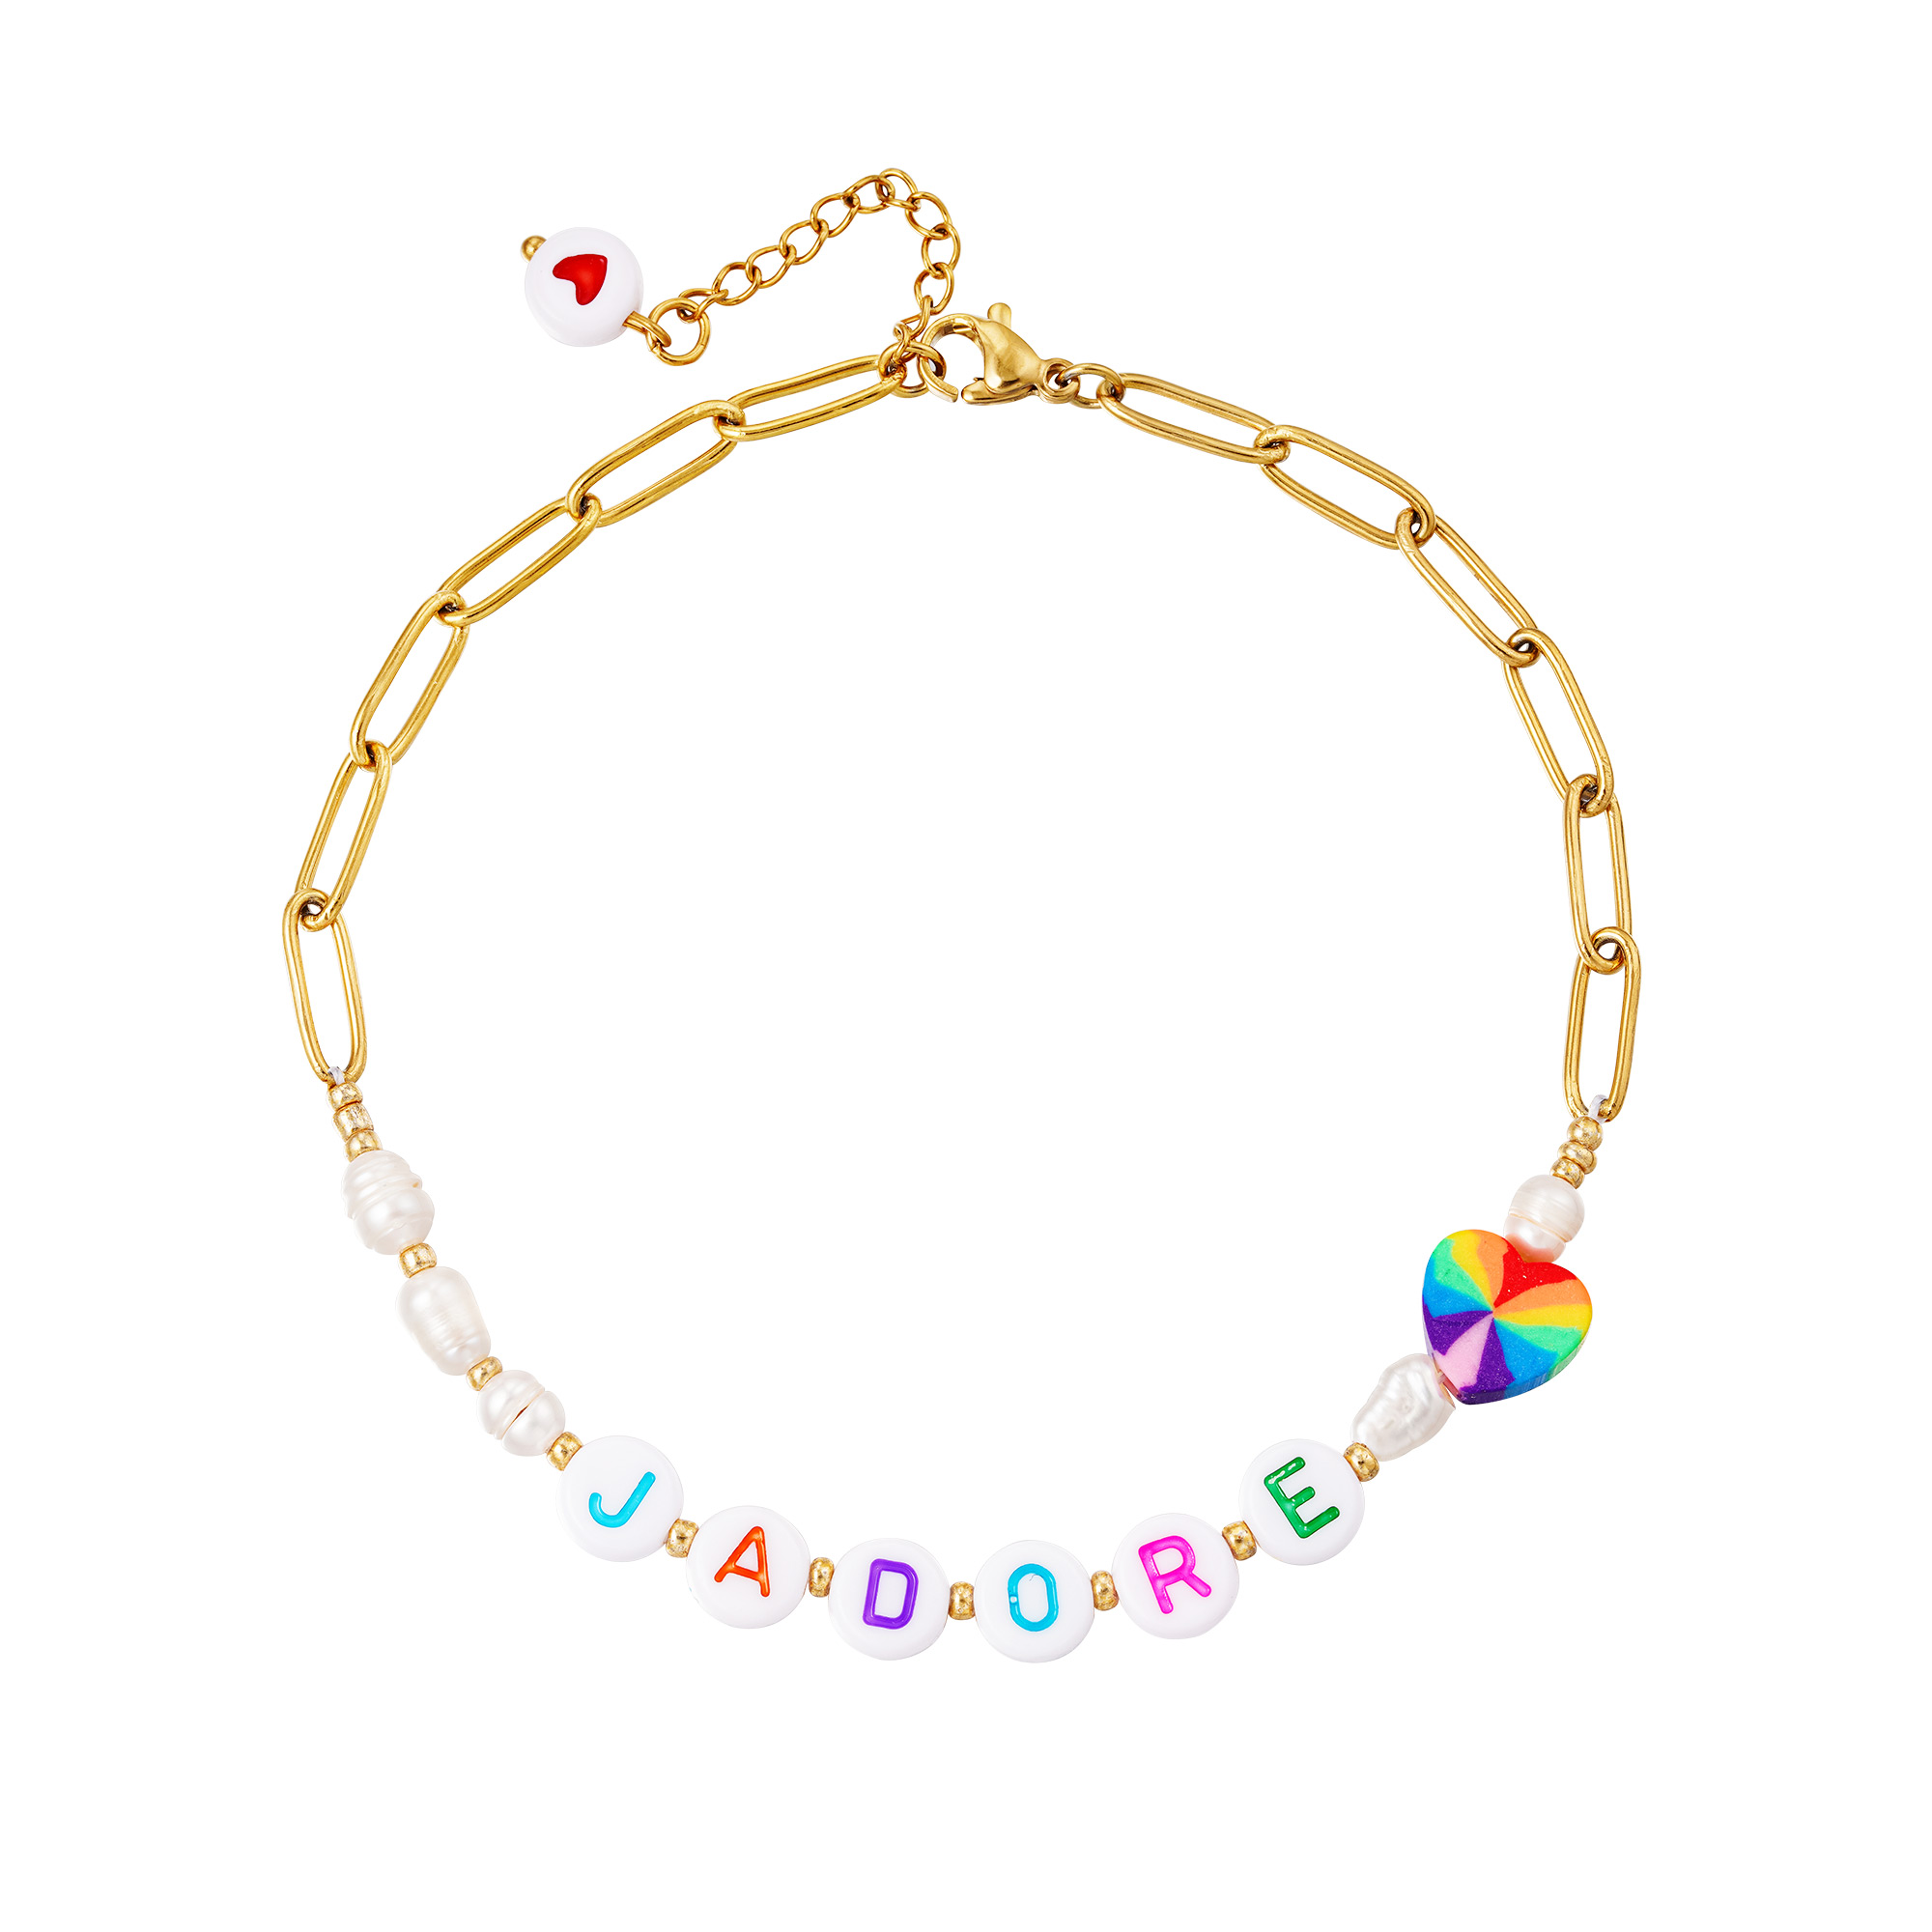 Stainless steel anklet J'adore